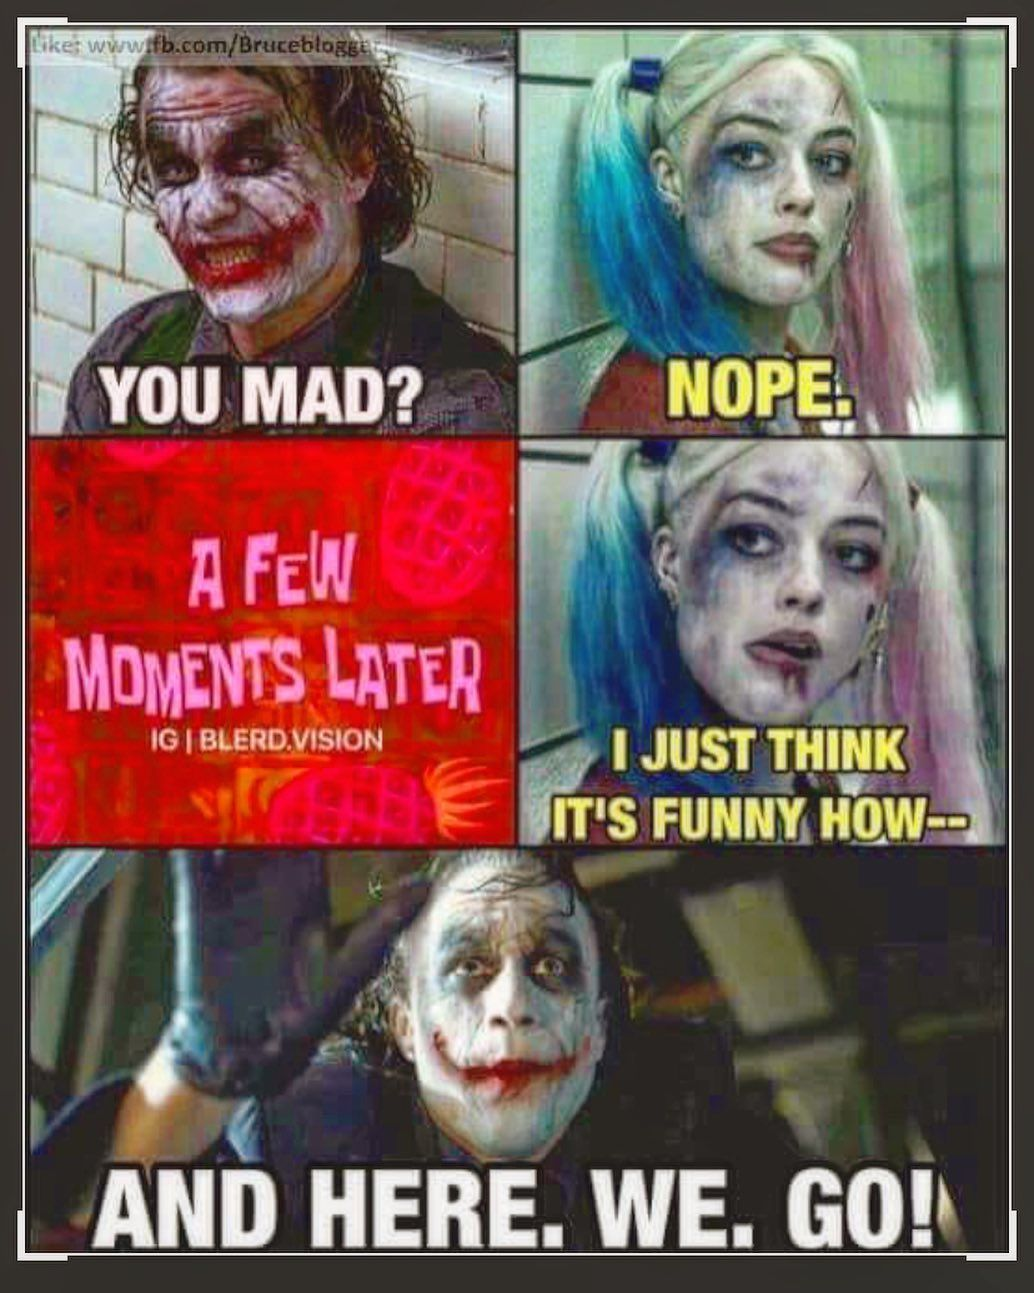 Halloween costumes Halloween costumes women DIY Halloween makeup scary makeup ideas gift idea gift for boyfriend gift for girlfriend gifts for men gifts   #Women cant live with them & cant live without them one of the #Greatest #Gifts to this #Earth a #Woman can be #Wrong & #Right at the same time  #Facts  #Joker & #HarleyQuinn #Meme real #Relationships still #Exist to bad some will never #experience 1 (#FunnyMeme) #Instagram  Im #mamp;mcostumediy